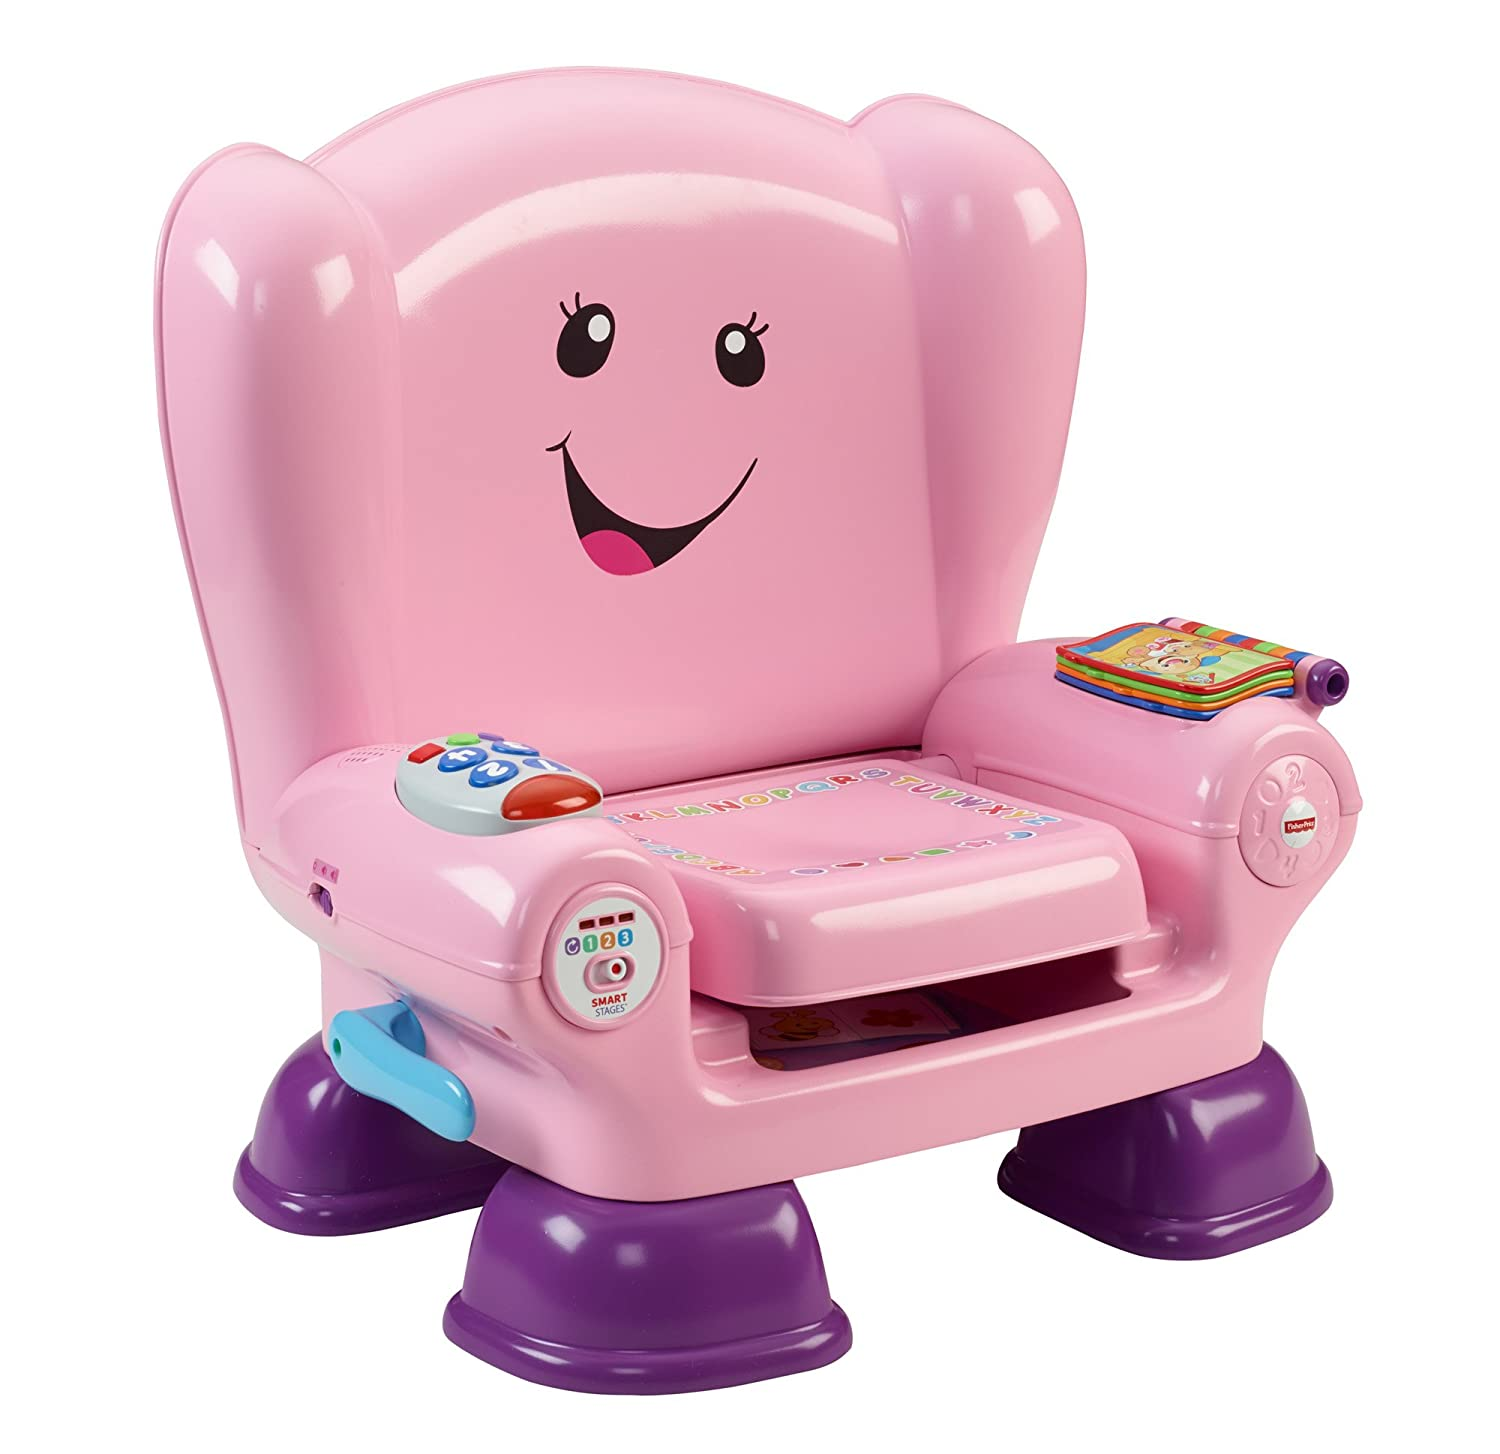 Fisher price smart stages chair - Fisher Price Smart Stages Chair 14